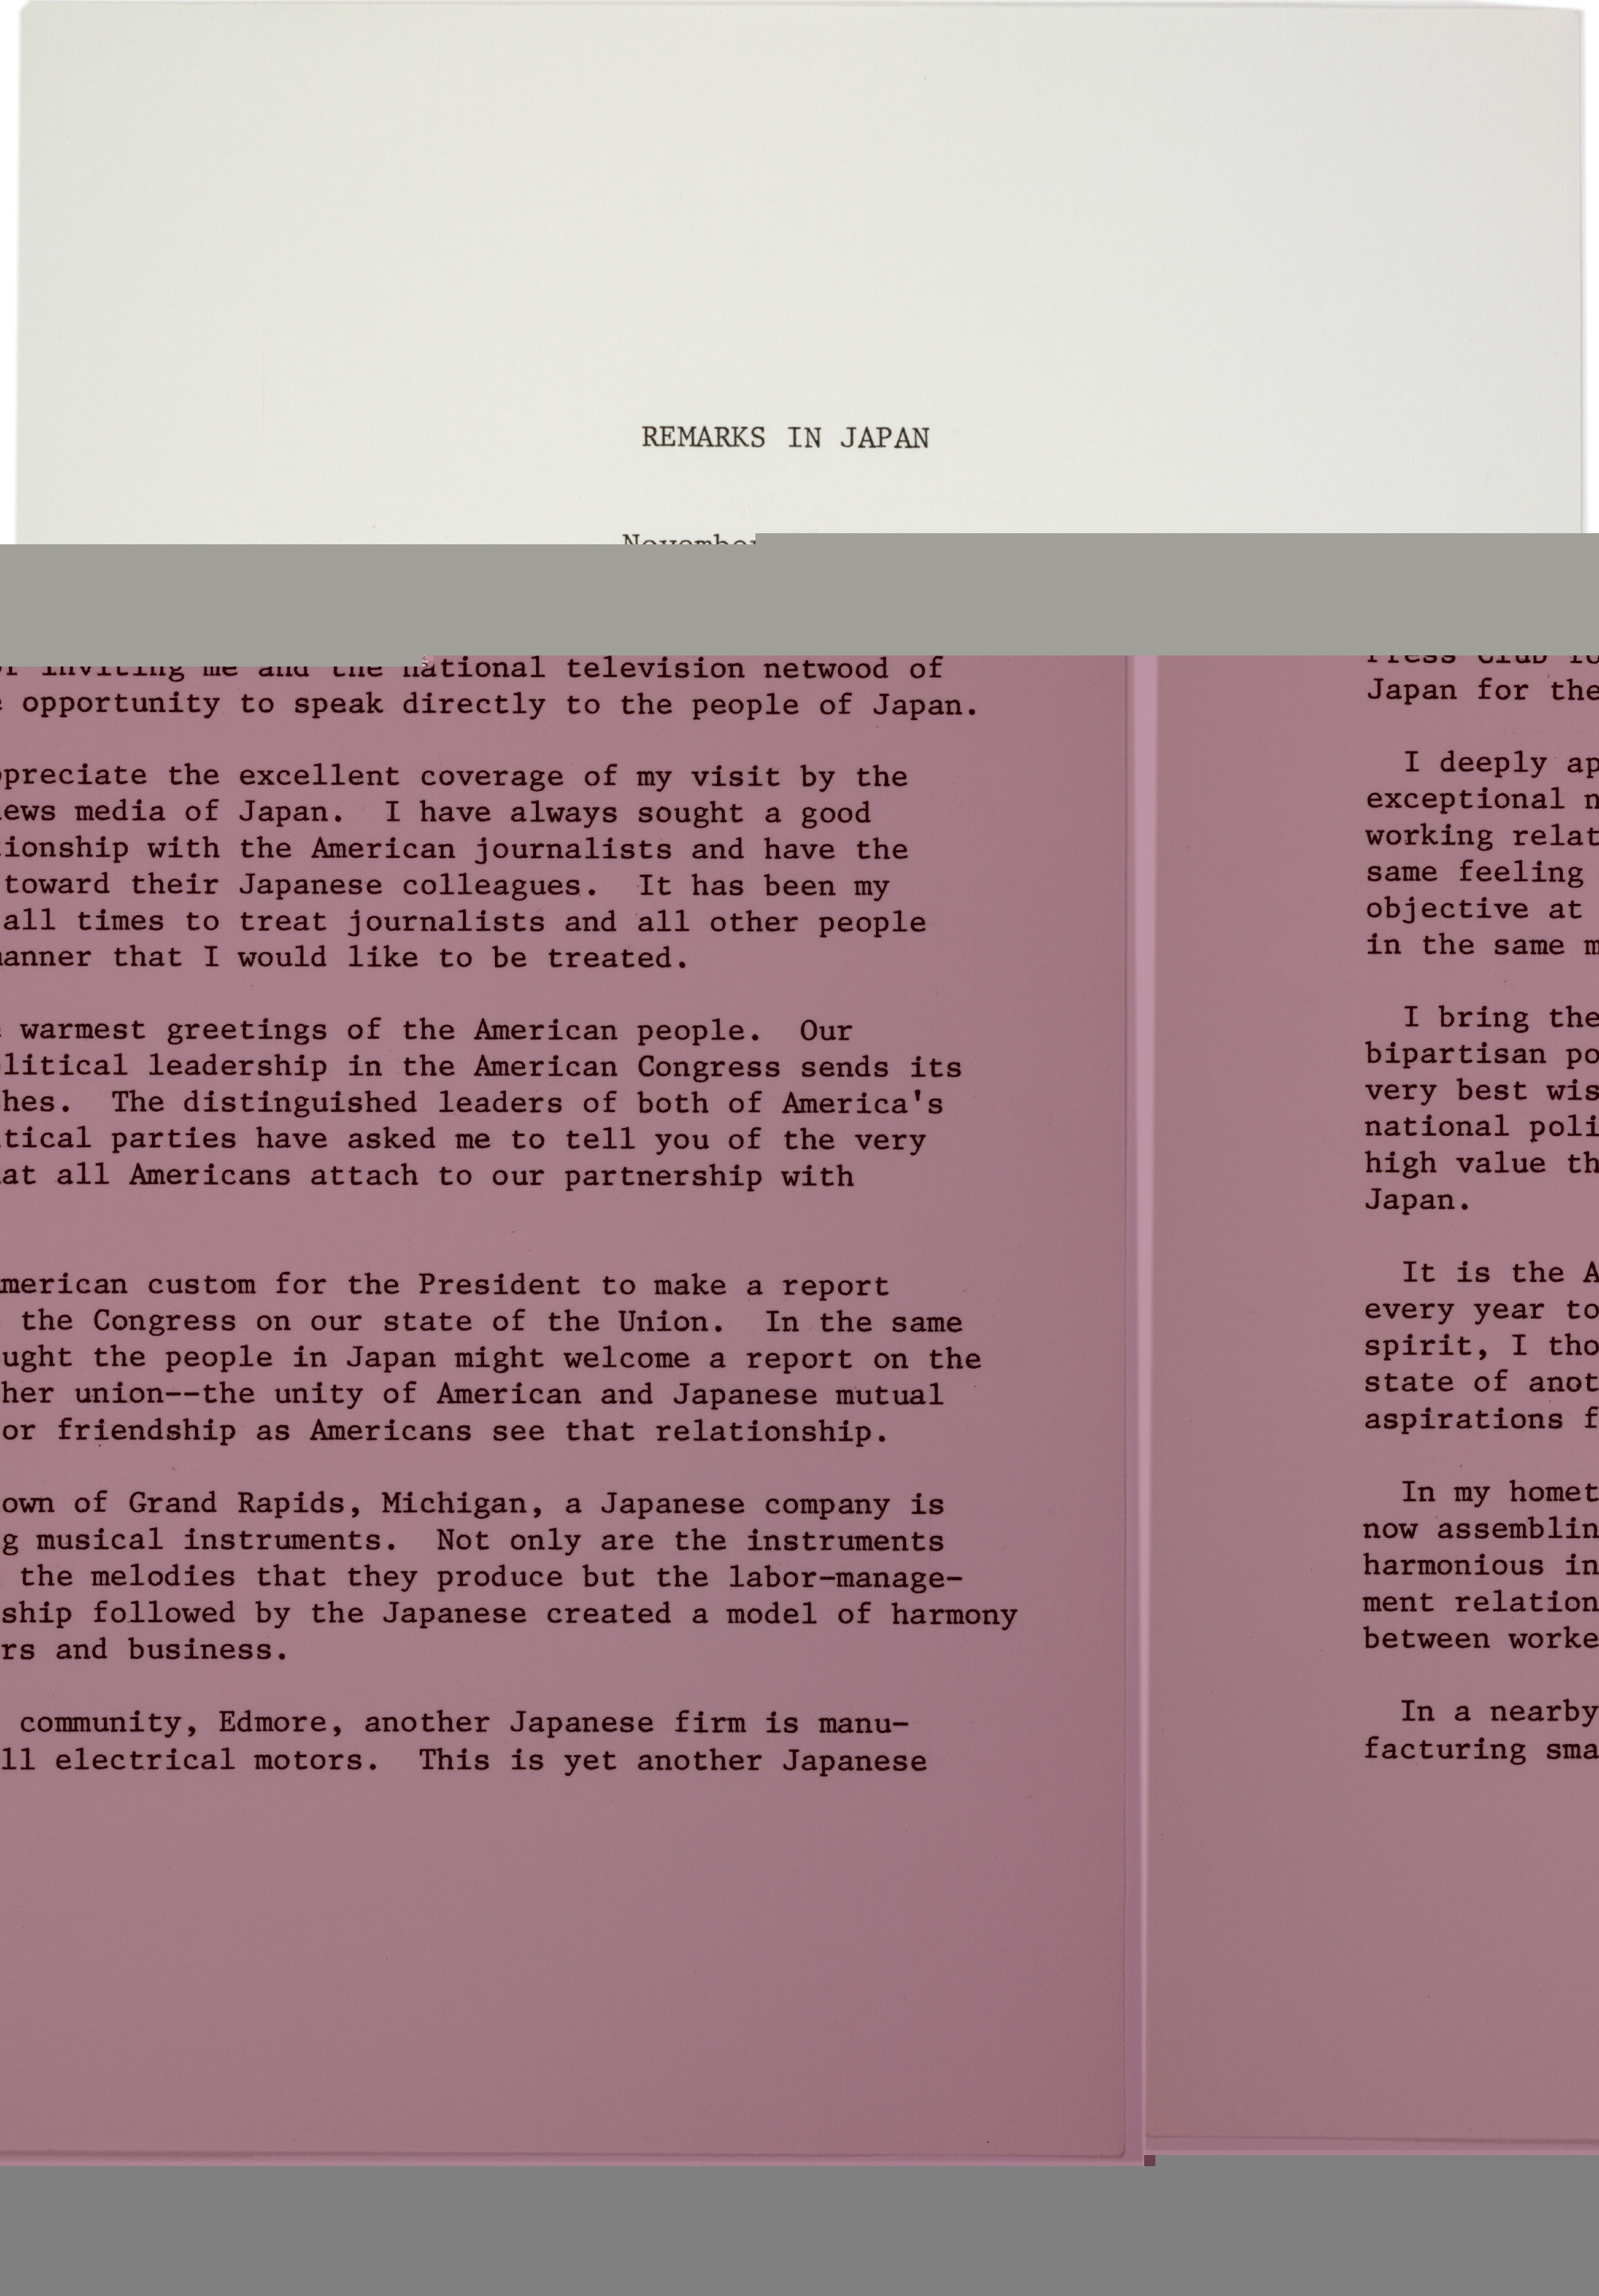 president ford s remarks in the gilder lehrman president ford s remarks in 1974